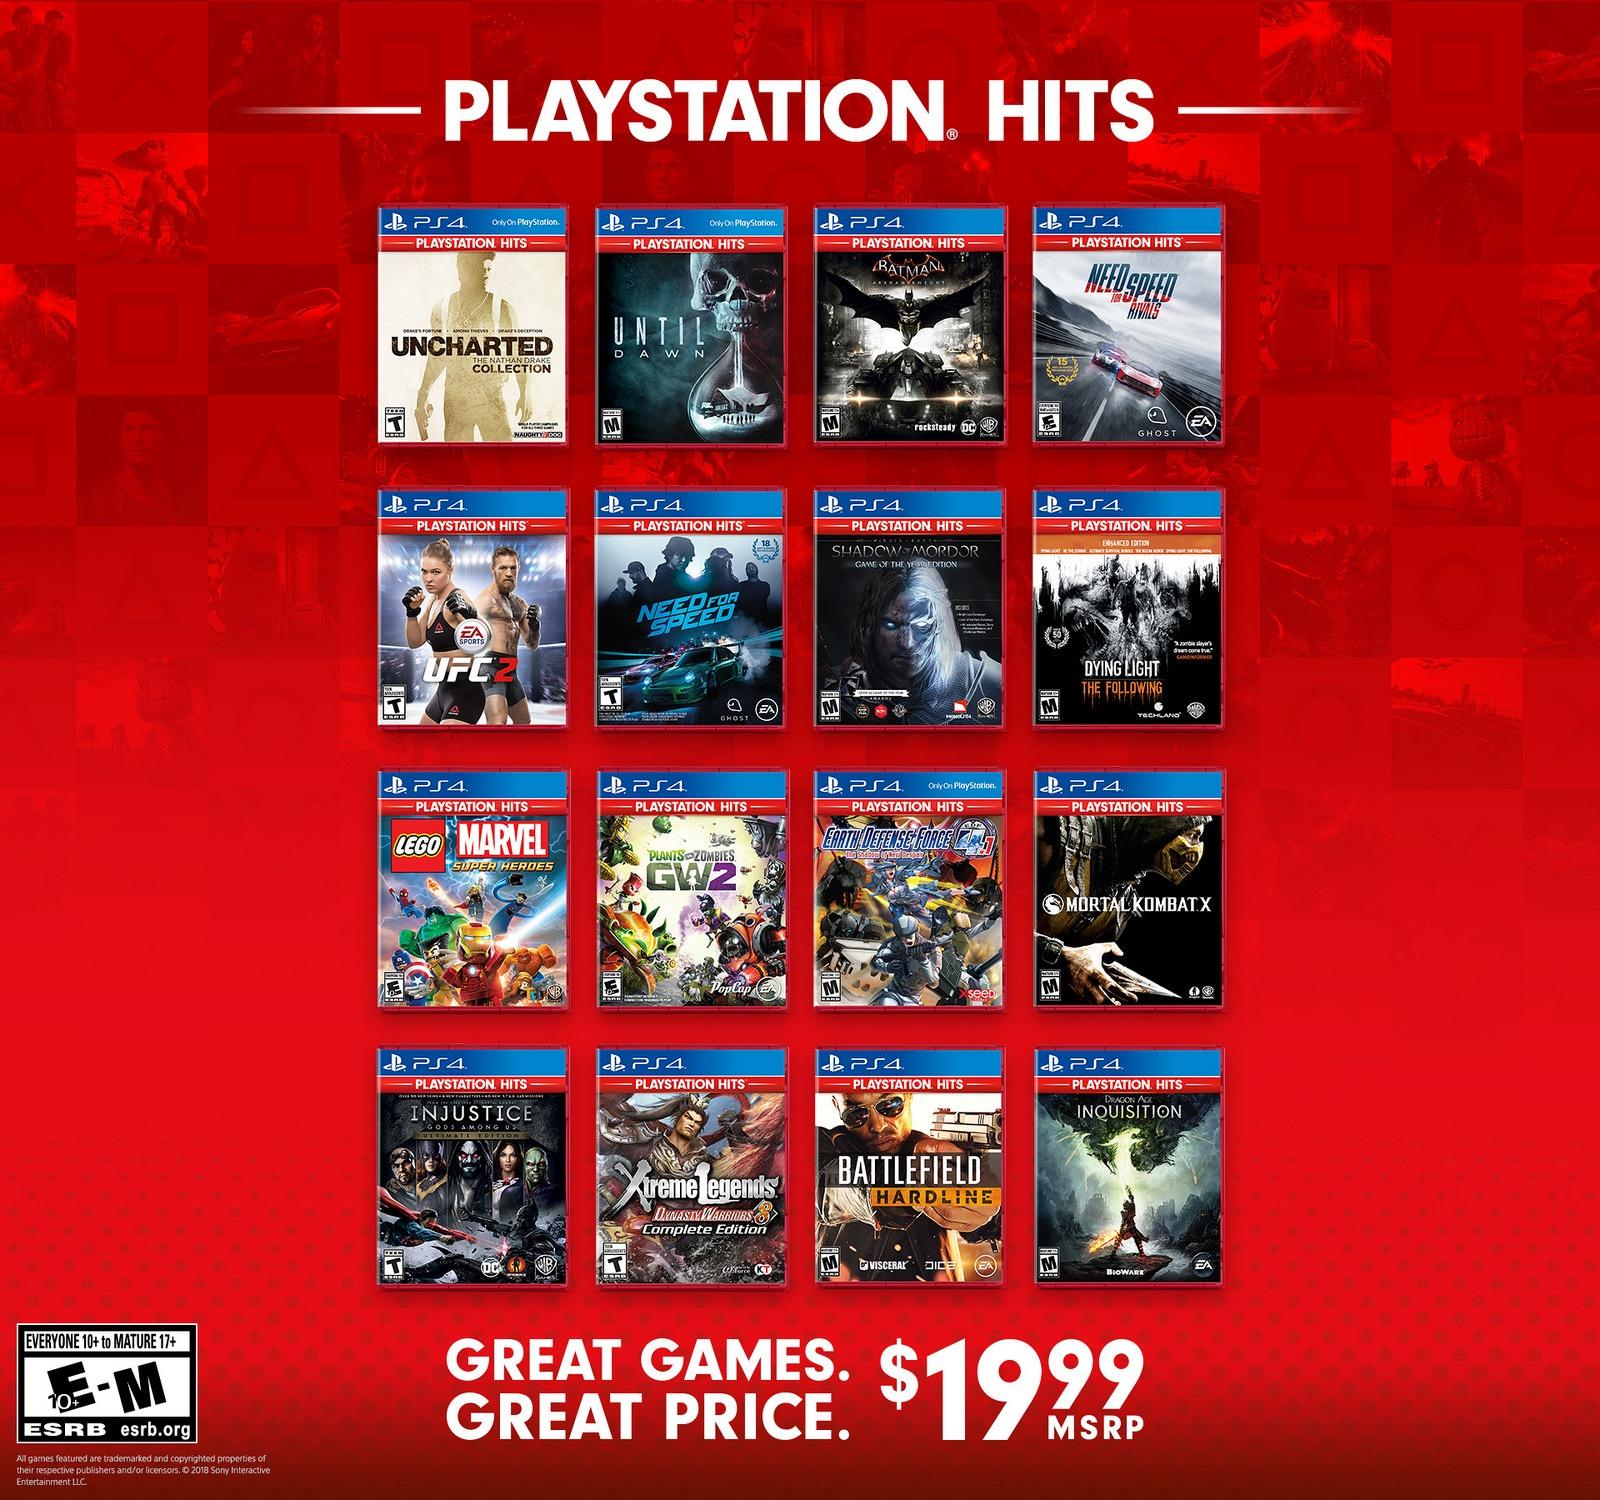 More PS4 Titles Coming to the PlayStation Hits Range in